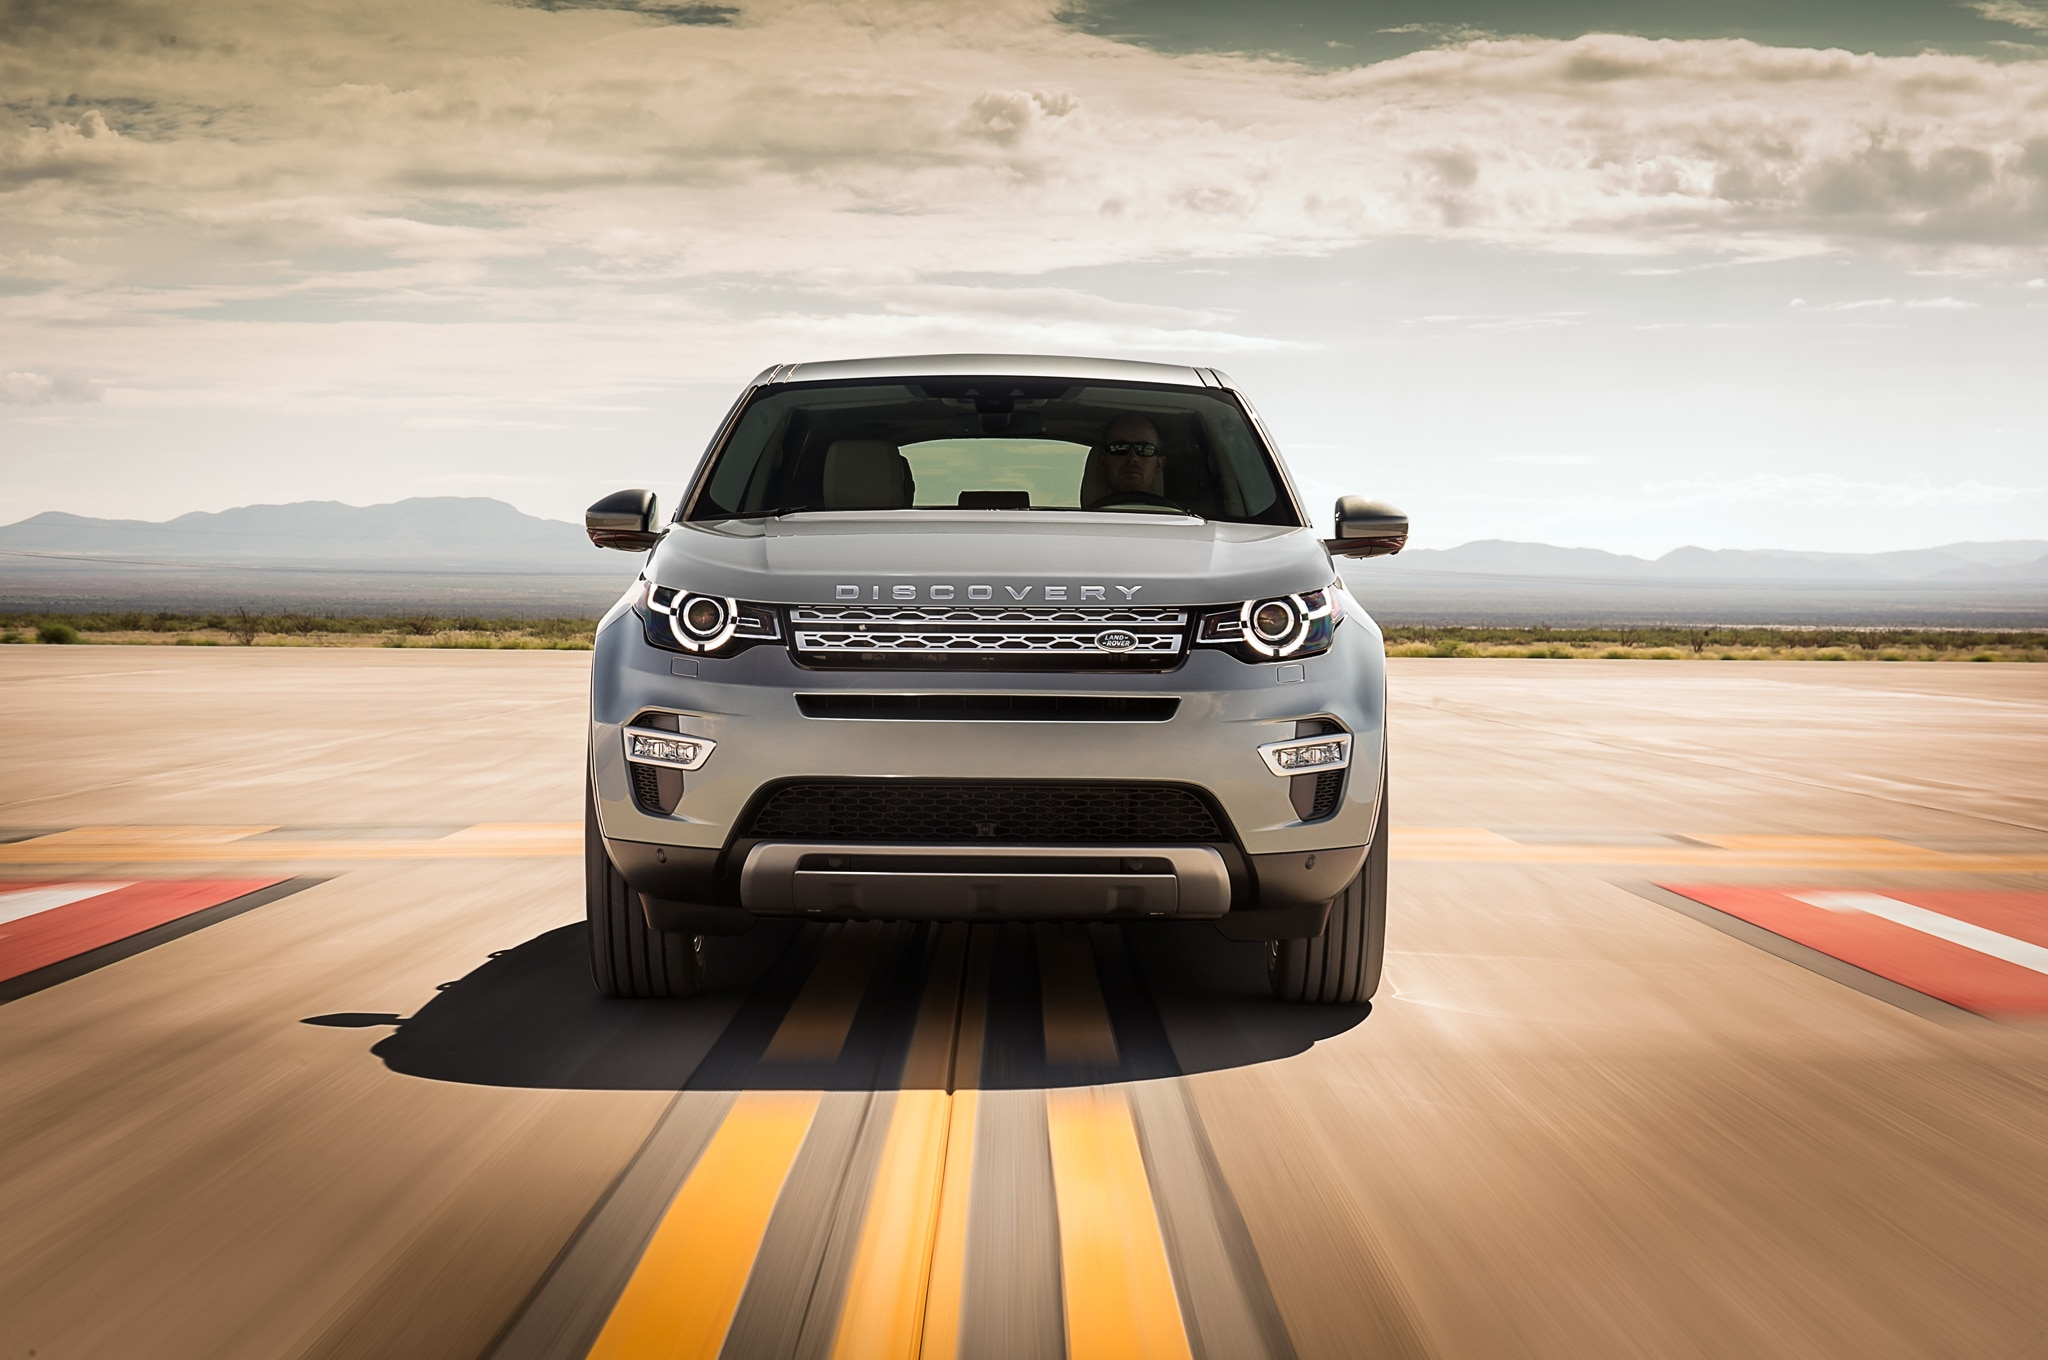 2015 Land Rover Discovery Sport front end in motion1 2015 land rover discovery sport review LR3 Front Bumper at soozxer.org